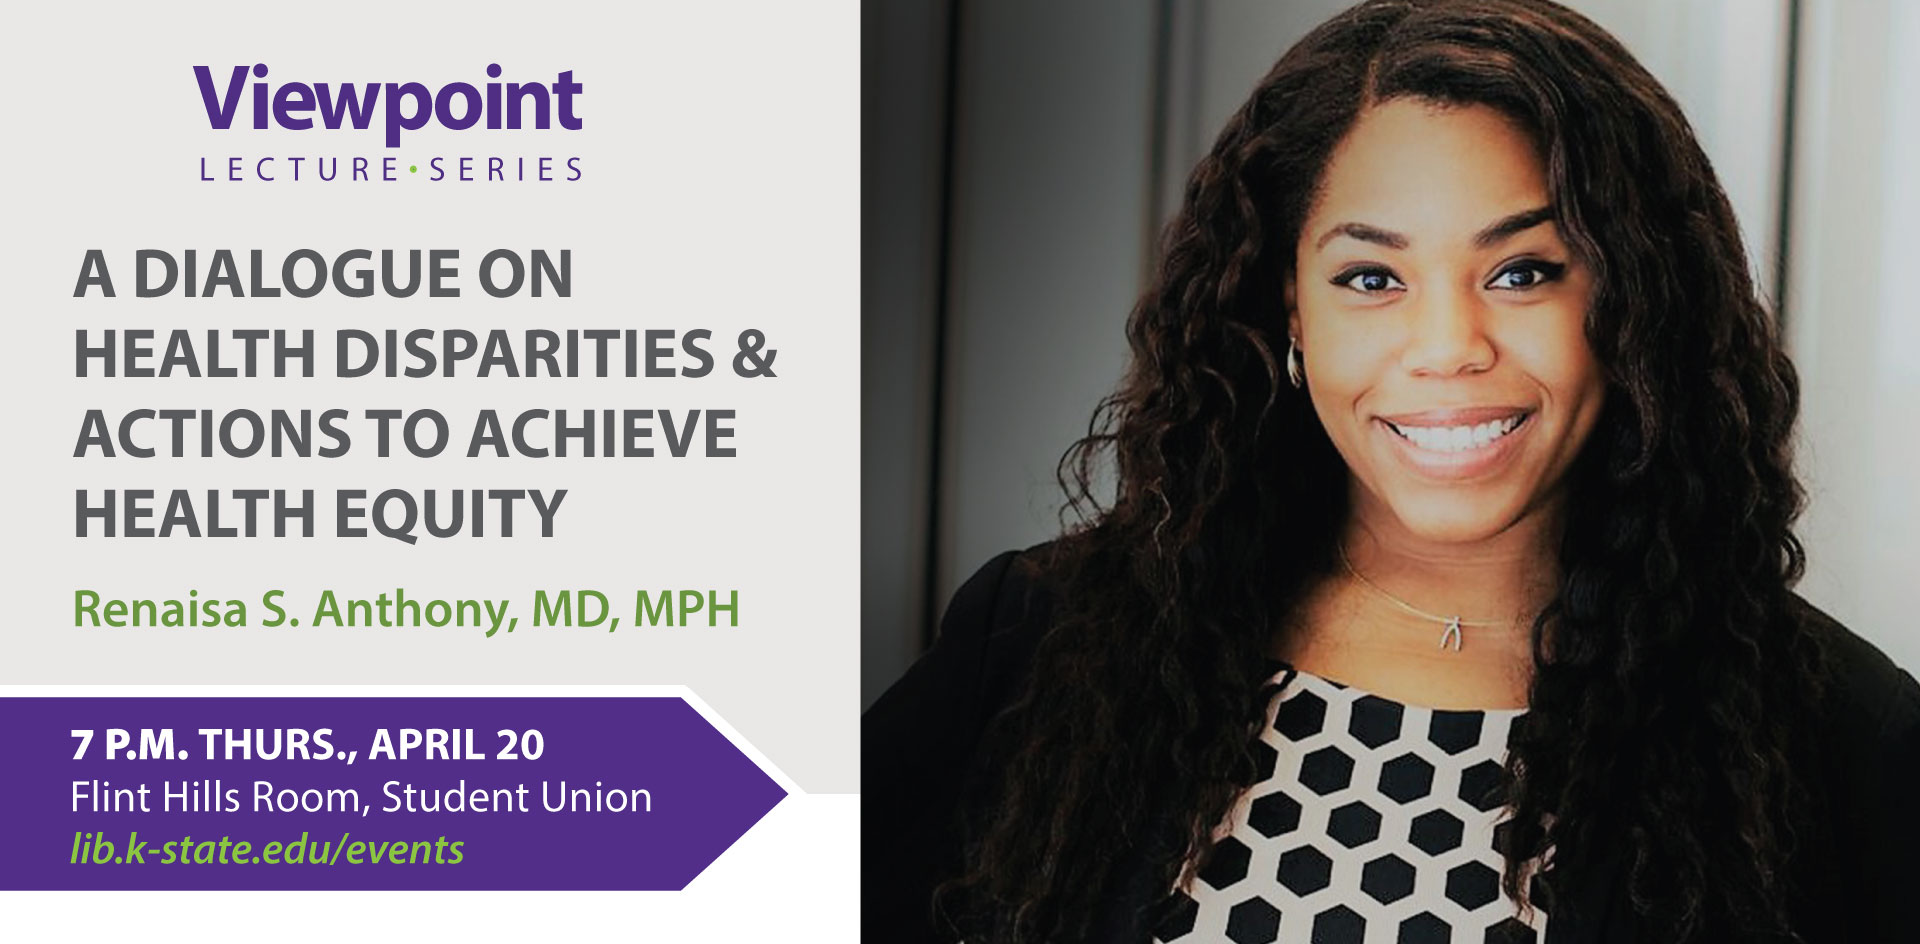 Viewpoint Lectures - Dr. Renaisa Anthony